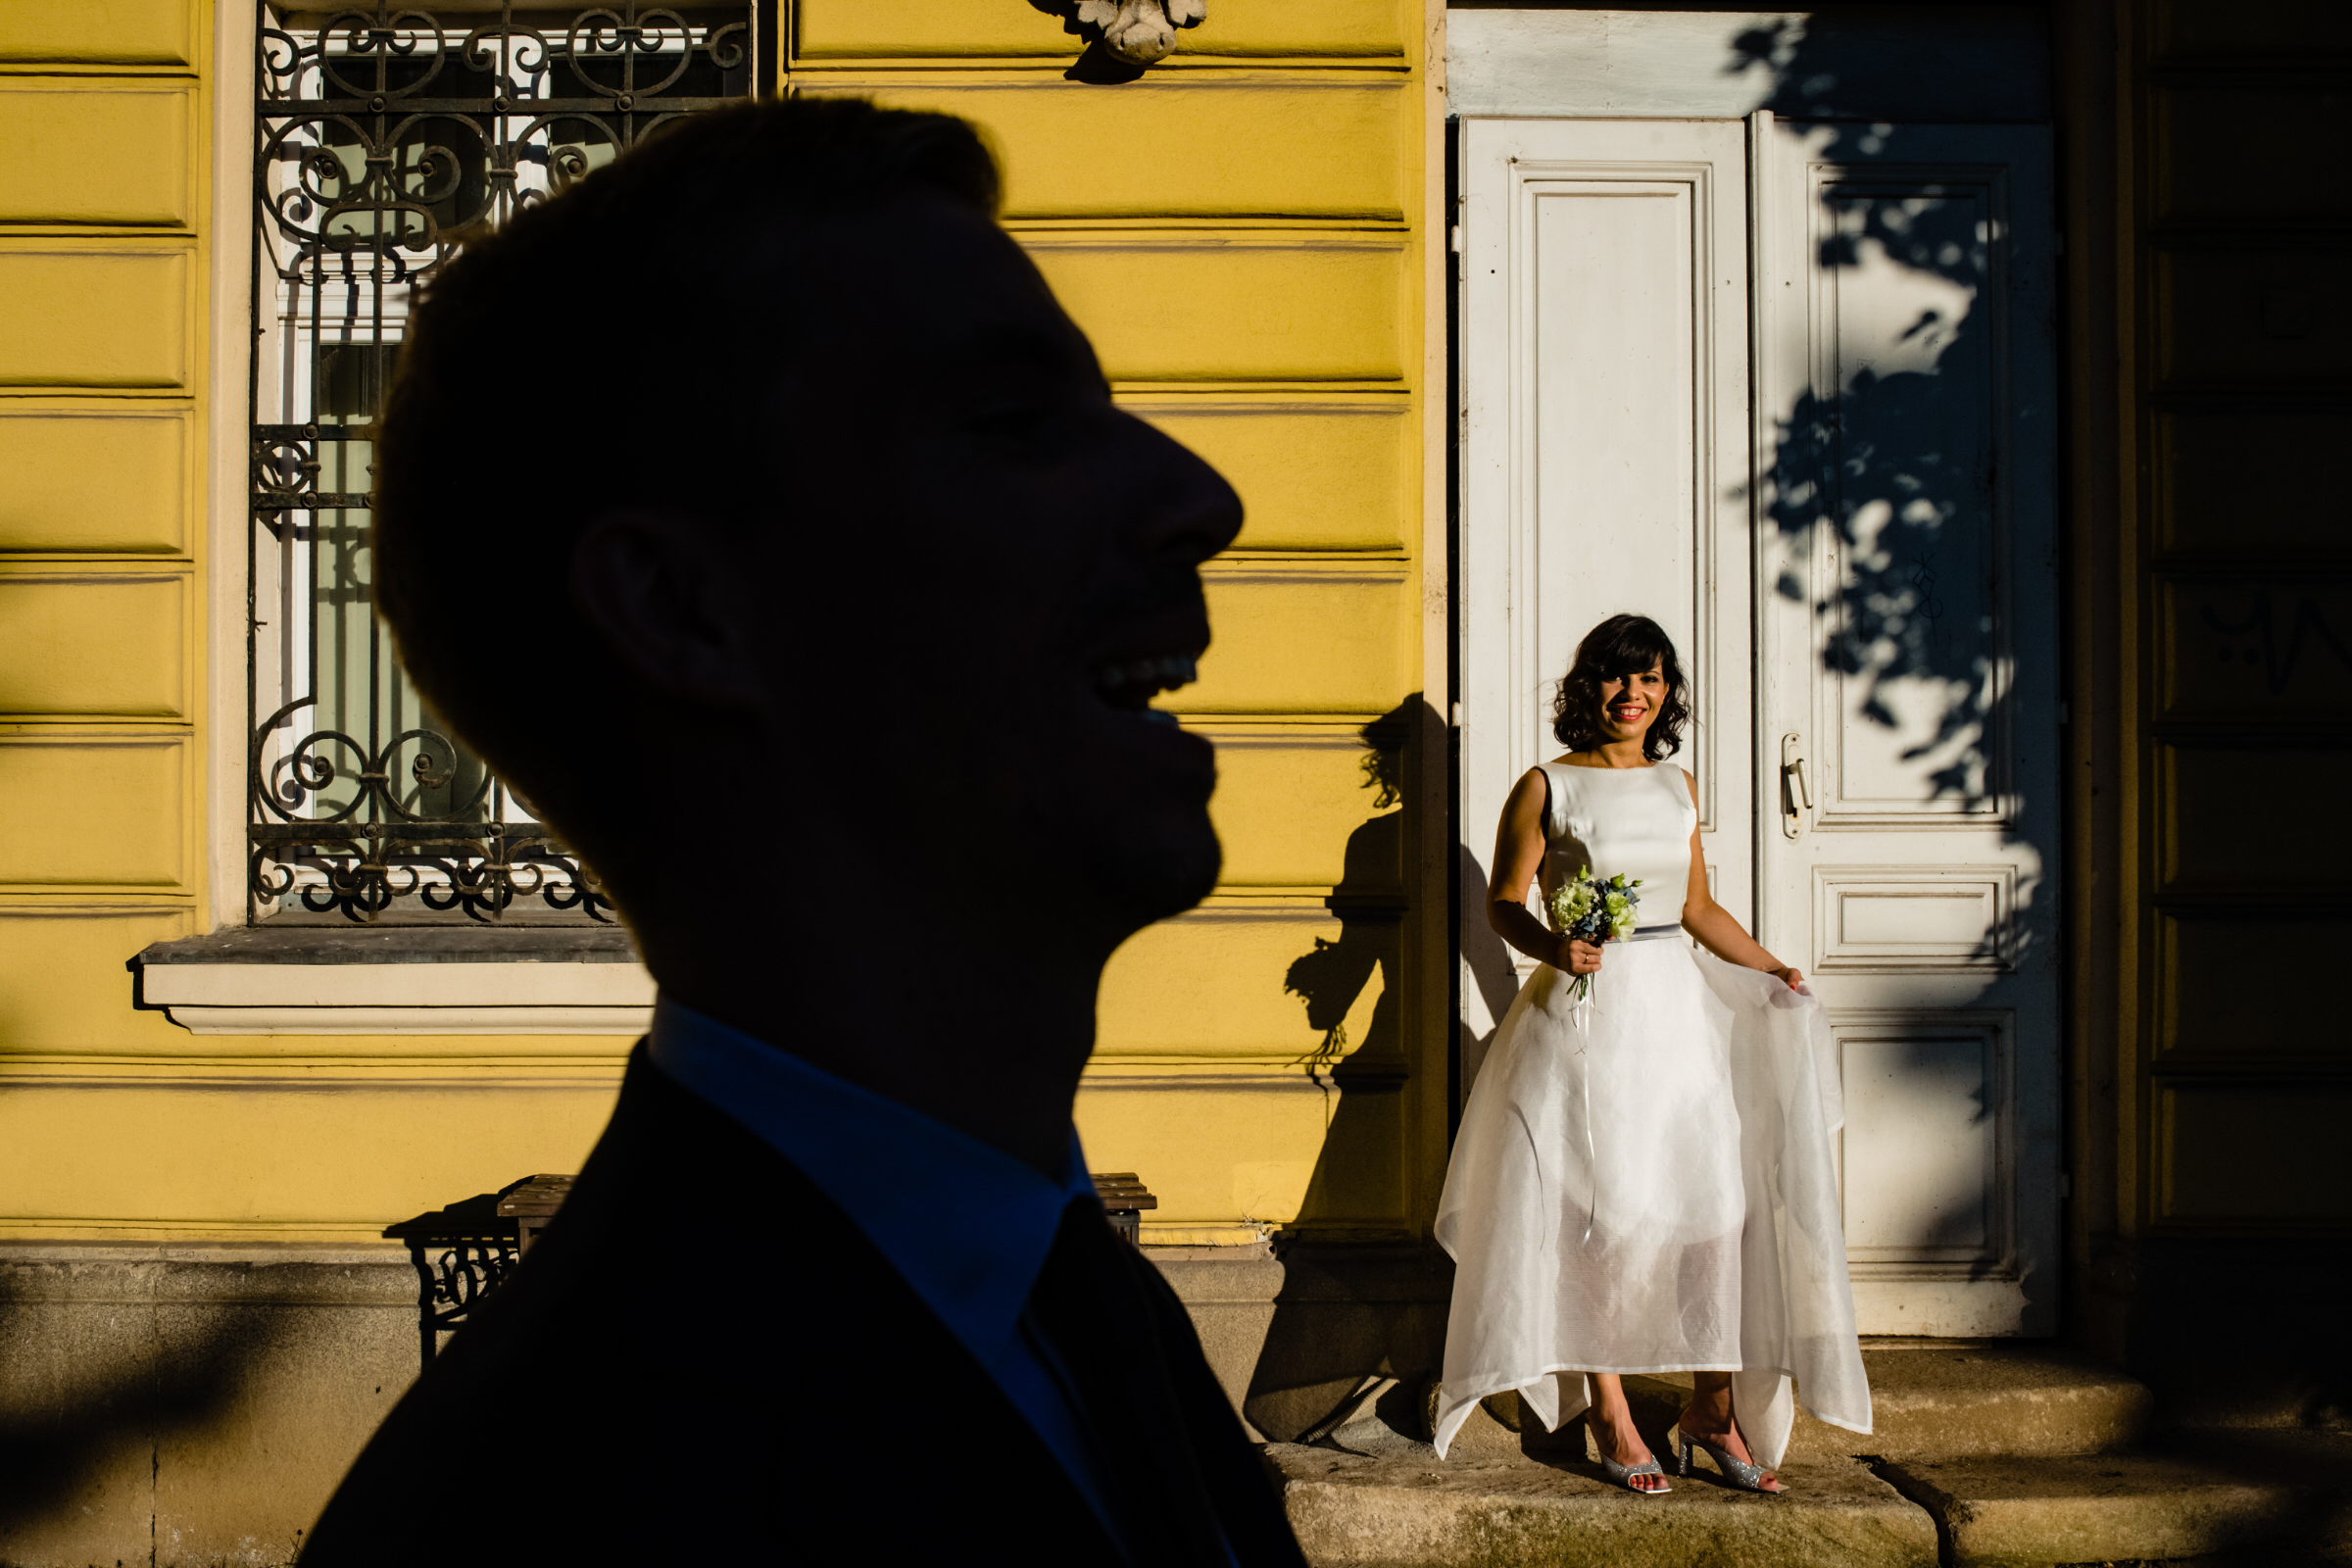 Silhouette of laughing groom with bride - photo by Deliysky Studio